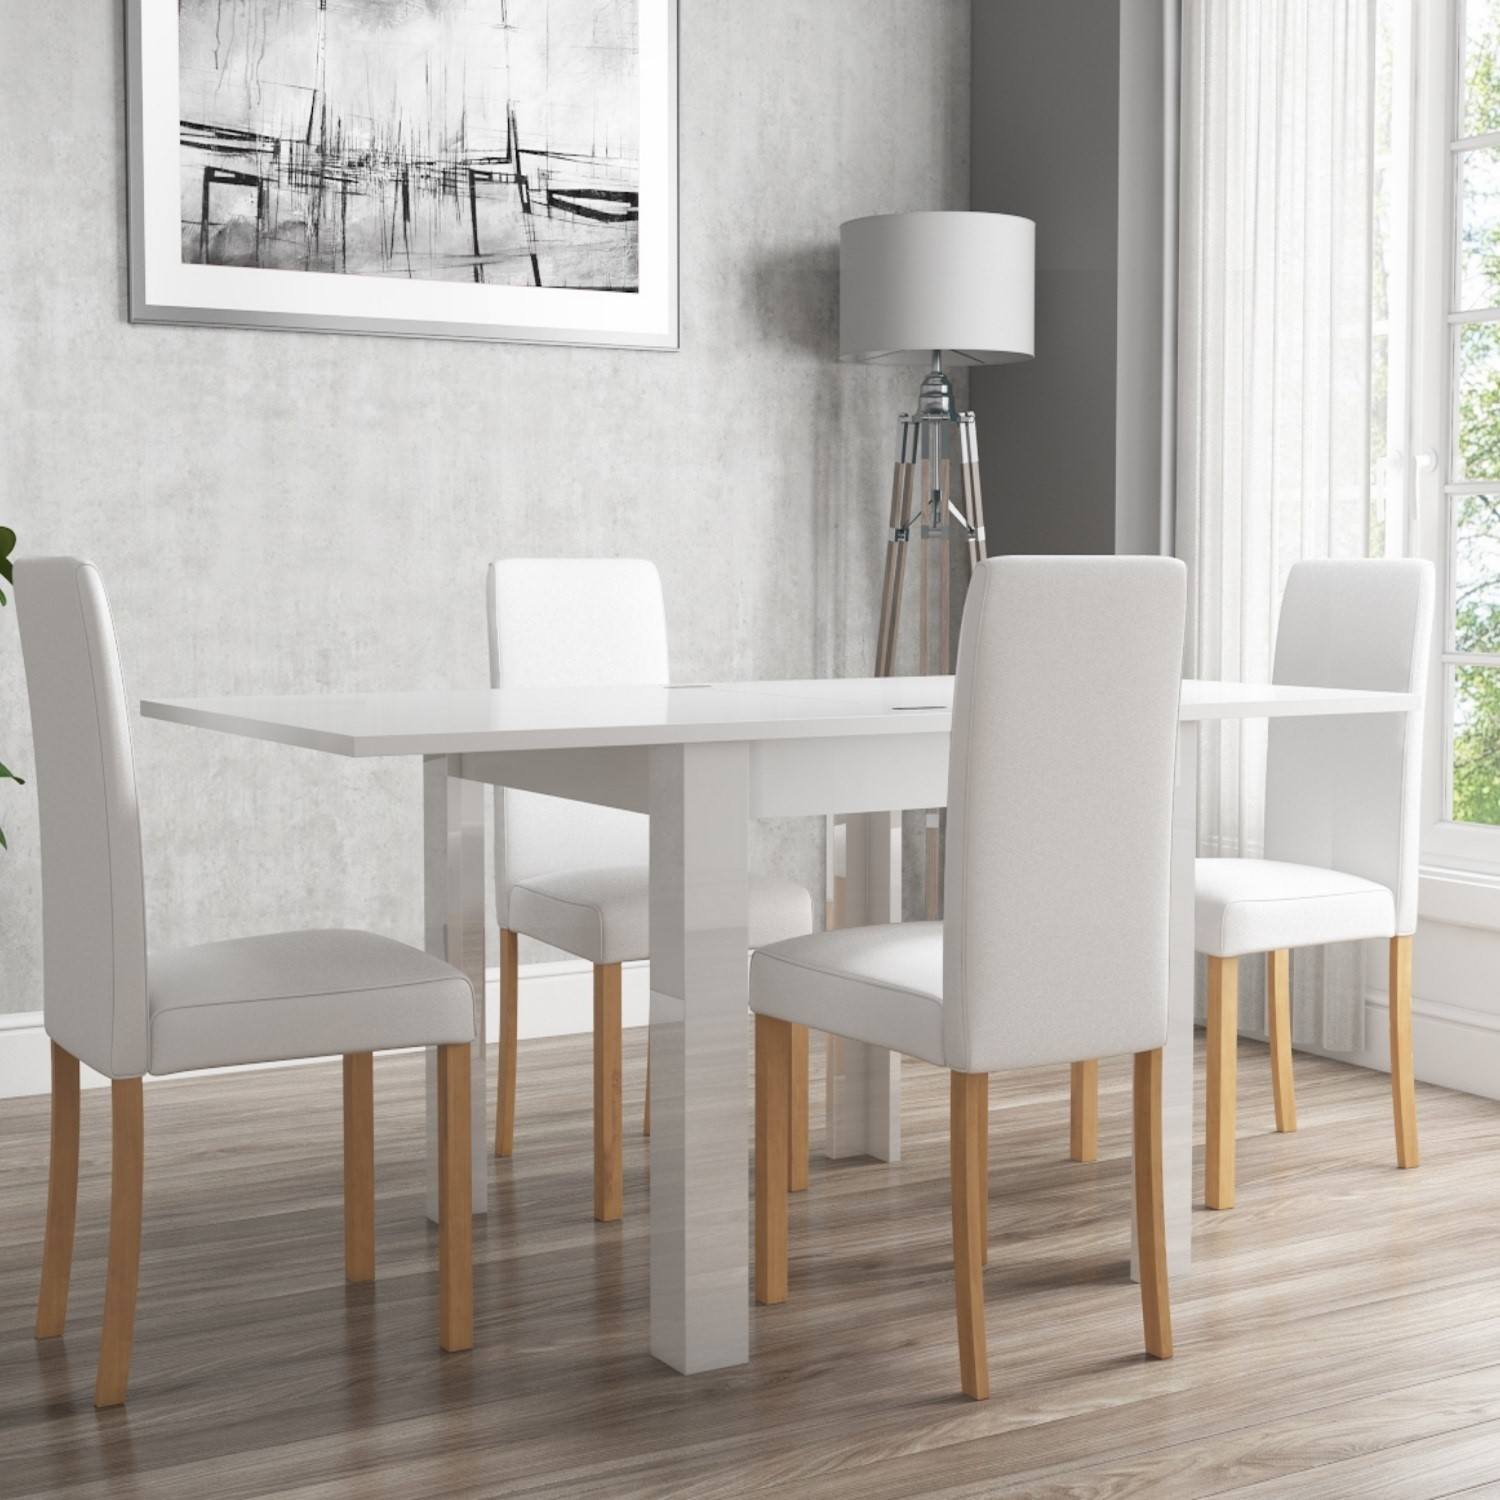 white high gloss flip top dining table and 4 white faux leather rh furniture123 co uk